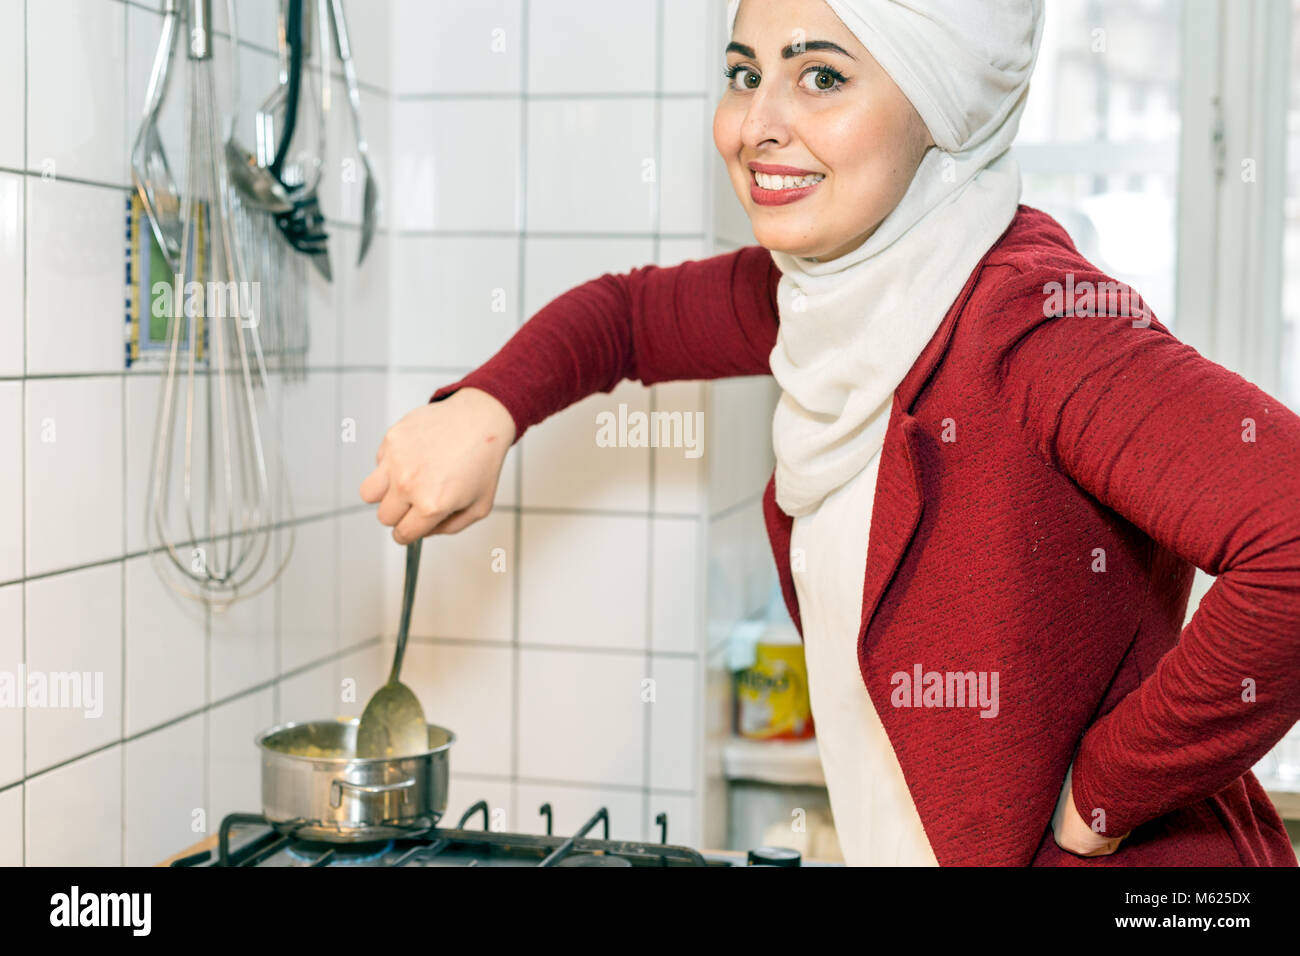 Malakeh Jazmati, Syrian TV-Star of a Cooking Show, cookbook author, refugee, living in exile in Berlin, Germany. - Stock Image